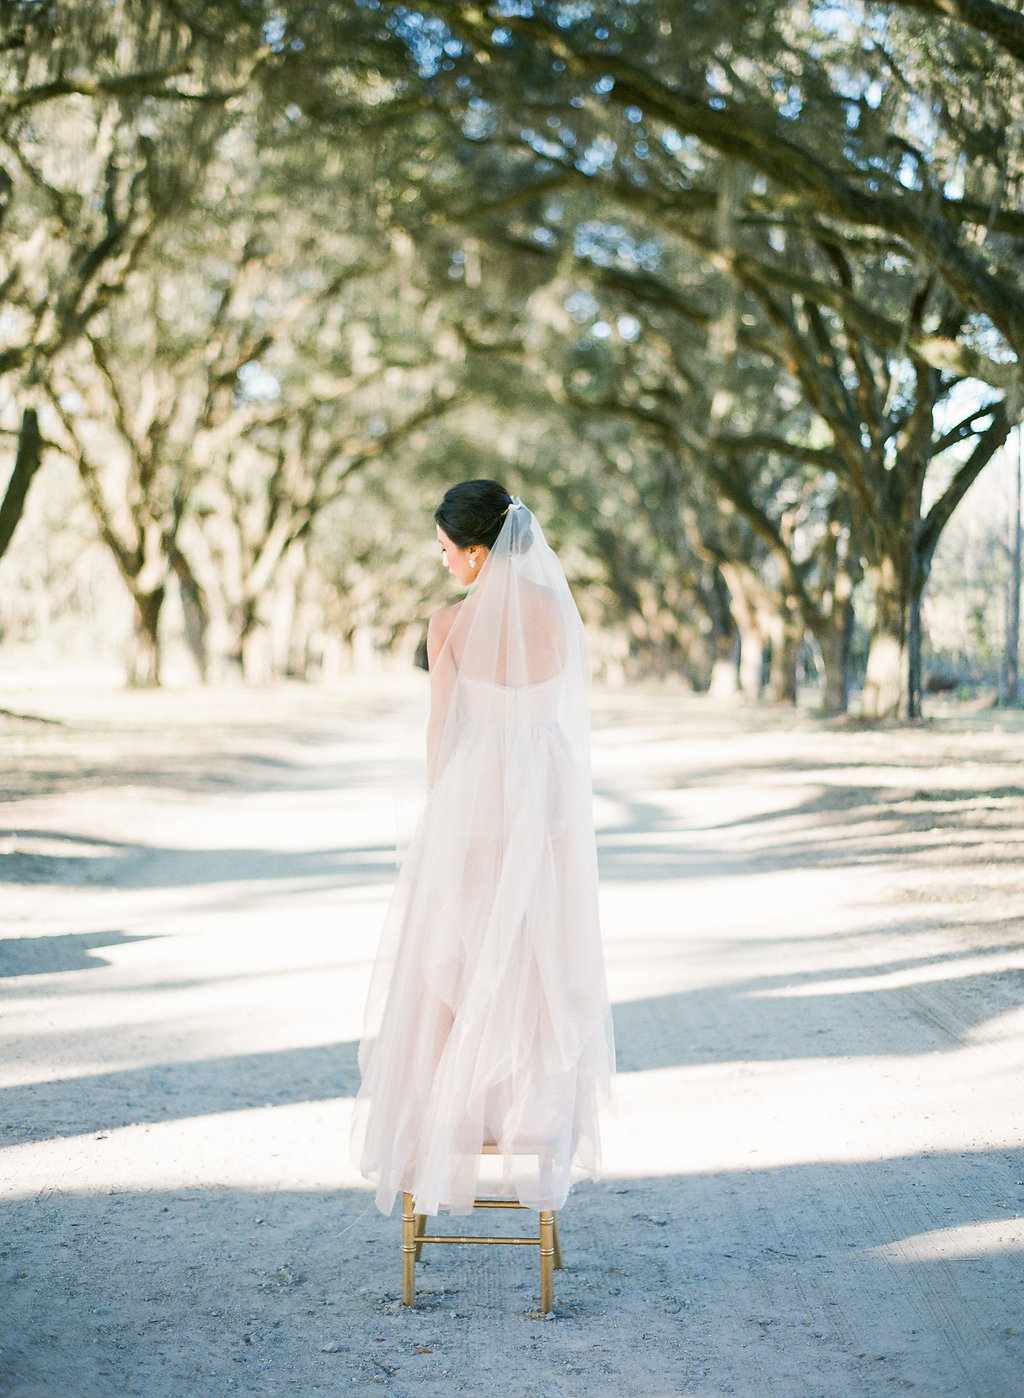 the-happy-bloom-design-studio-south-wormsloe-plantation-wedding-sarah-seven-blushing-ivory-and-beau-bridal-boutique-savannah-wedding-dresses-savannah-bridal-boutique-savannah-weddings-savannah-wedding-planner-savannah-event-planner-23.jpg